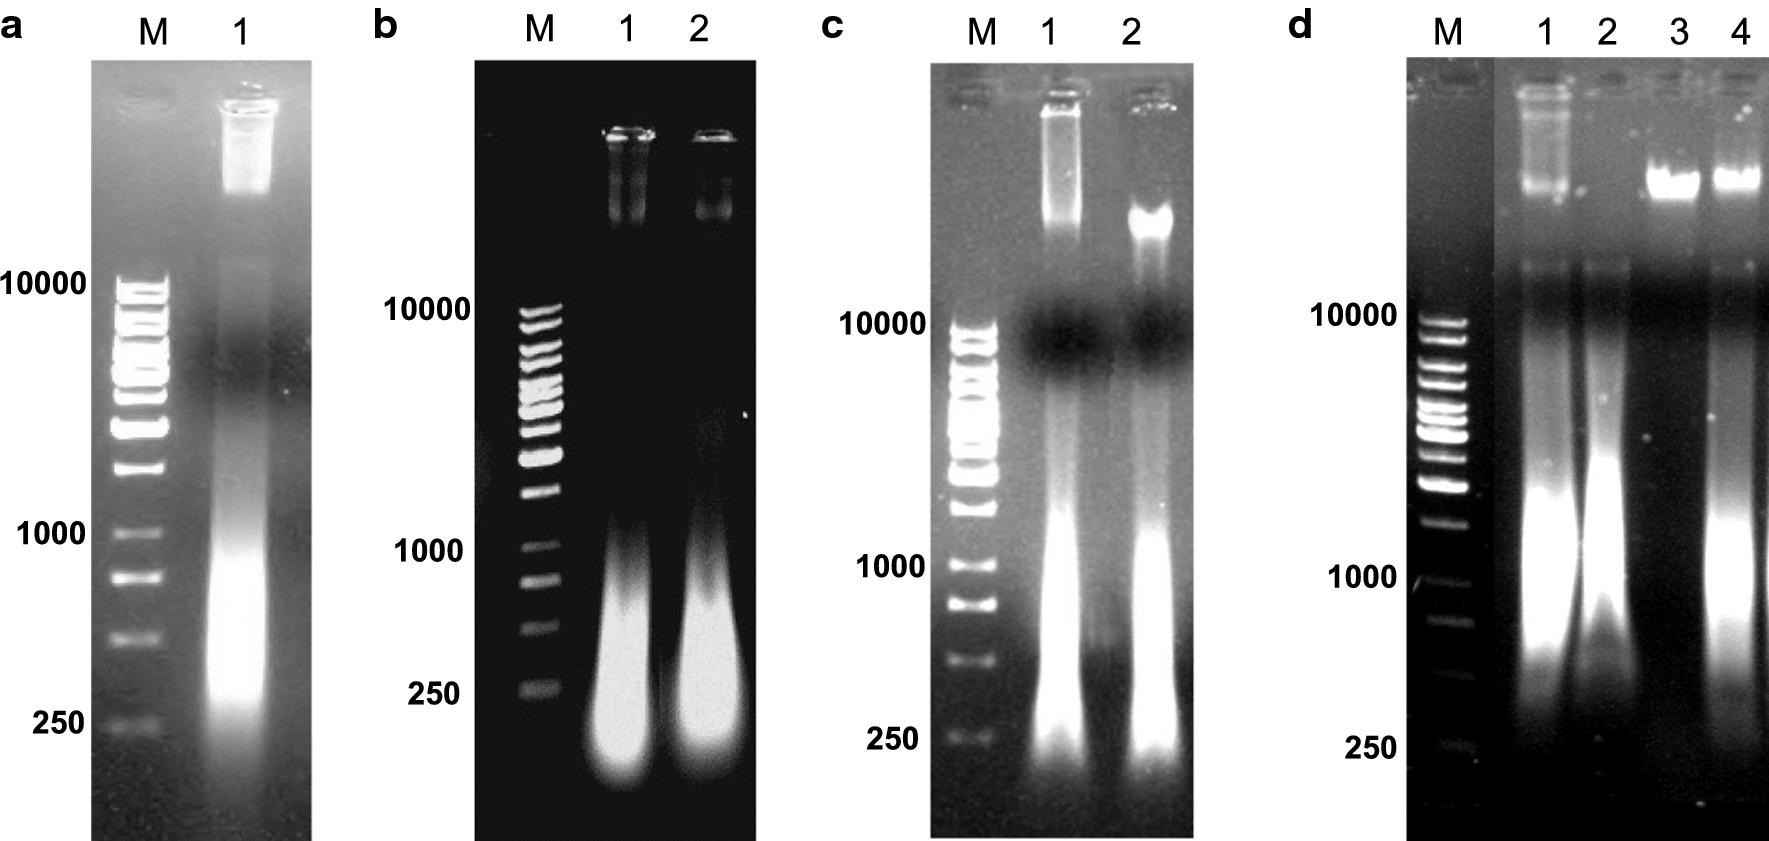 a Agarose gel-electrophoresis of nucleic acids isolated from purified hIFNγ IBs. 1 —Sample, isolated from IBs, b Agarose gel-electrophoresis of nucleic acids isolated from purified hIFNγ IBs treated with restriction endonuclease XhoI and c HindIII. 1 —Non-treated sample; 2(b) —Sample treated with XhoI; 2(c) —sample treated with HindIII; d Enzymatic digestion of nucleic acids isolated from purified hIFNγ IBs 1 —non treated sample; 2 —sample treated with mixture of RNase A and RNase T 1 ; 3 —sample treated with DNase I; 4 —sample treated with Proteinase K; M —Molecular weight marker, bp